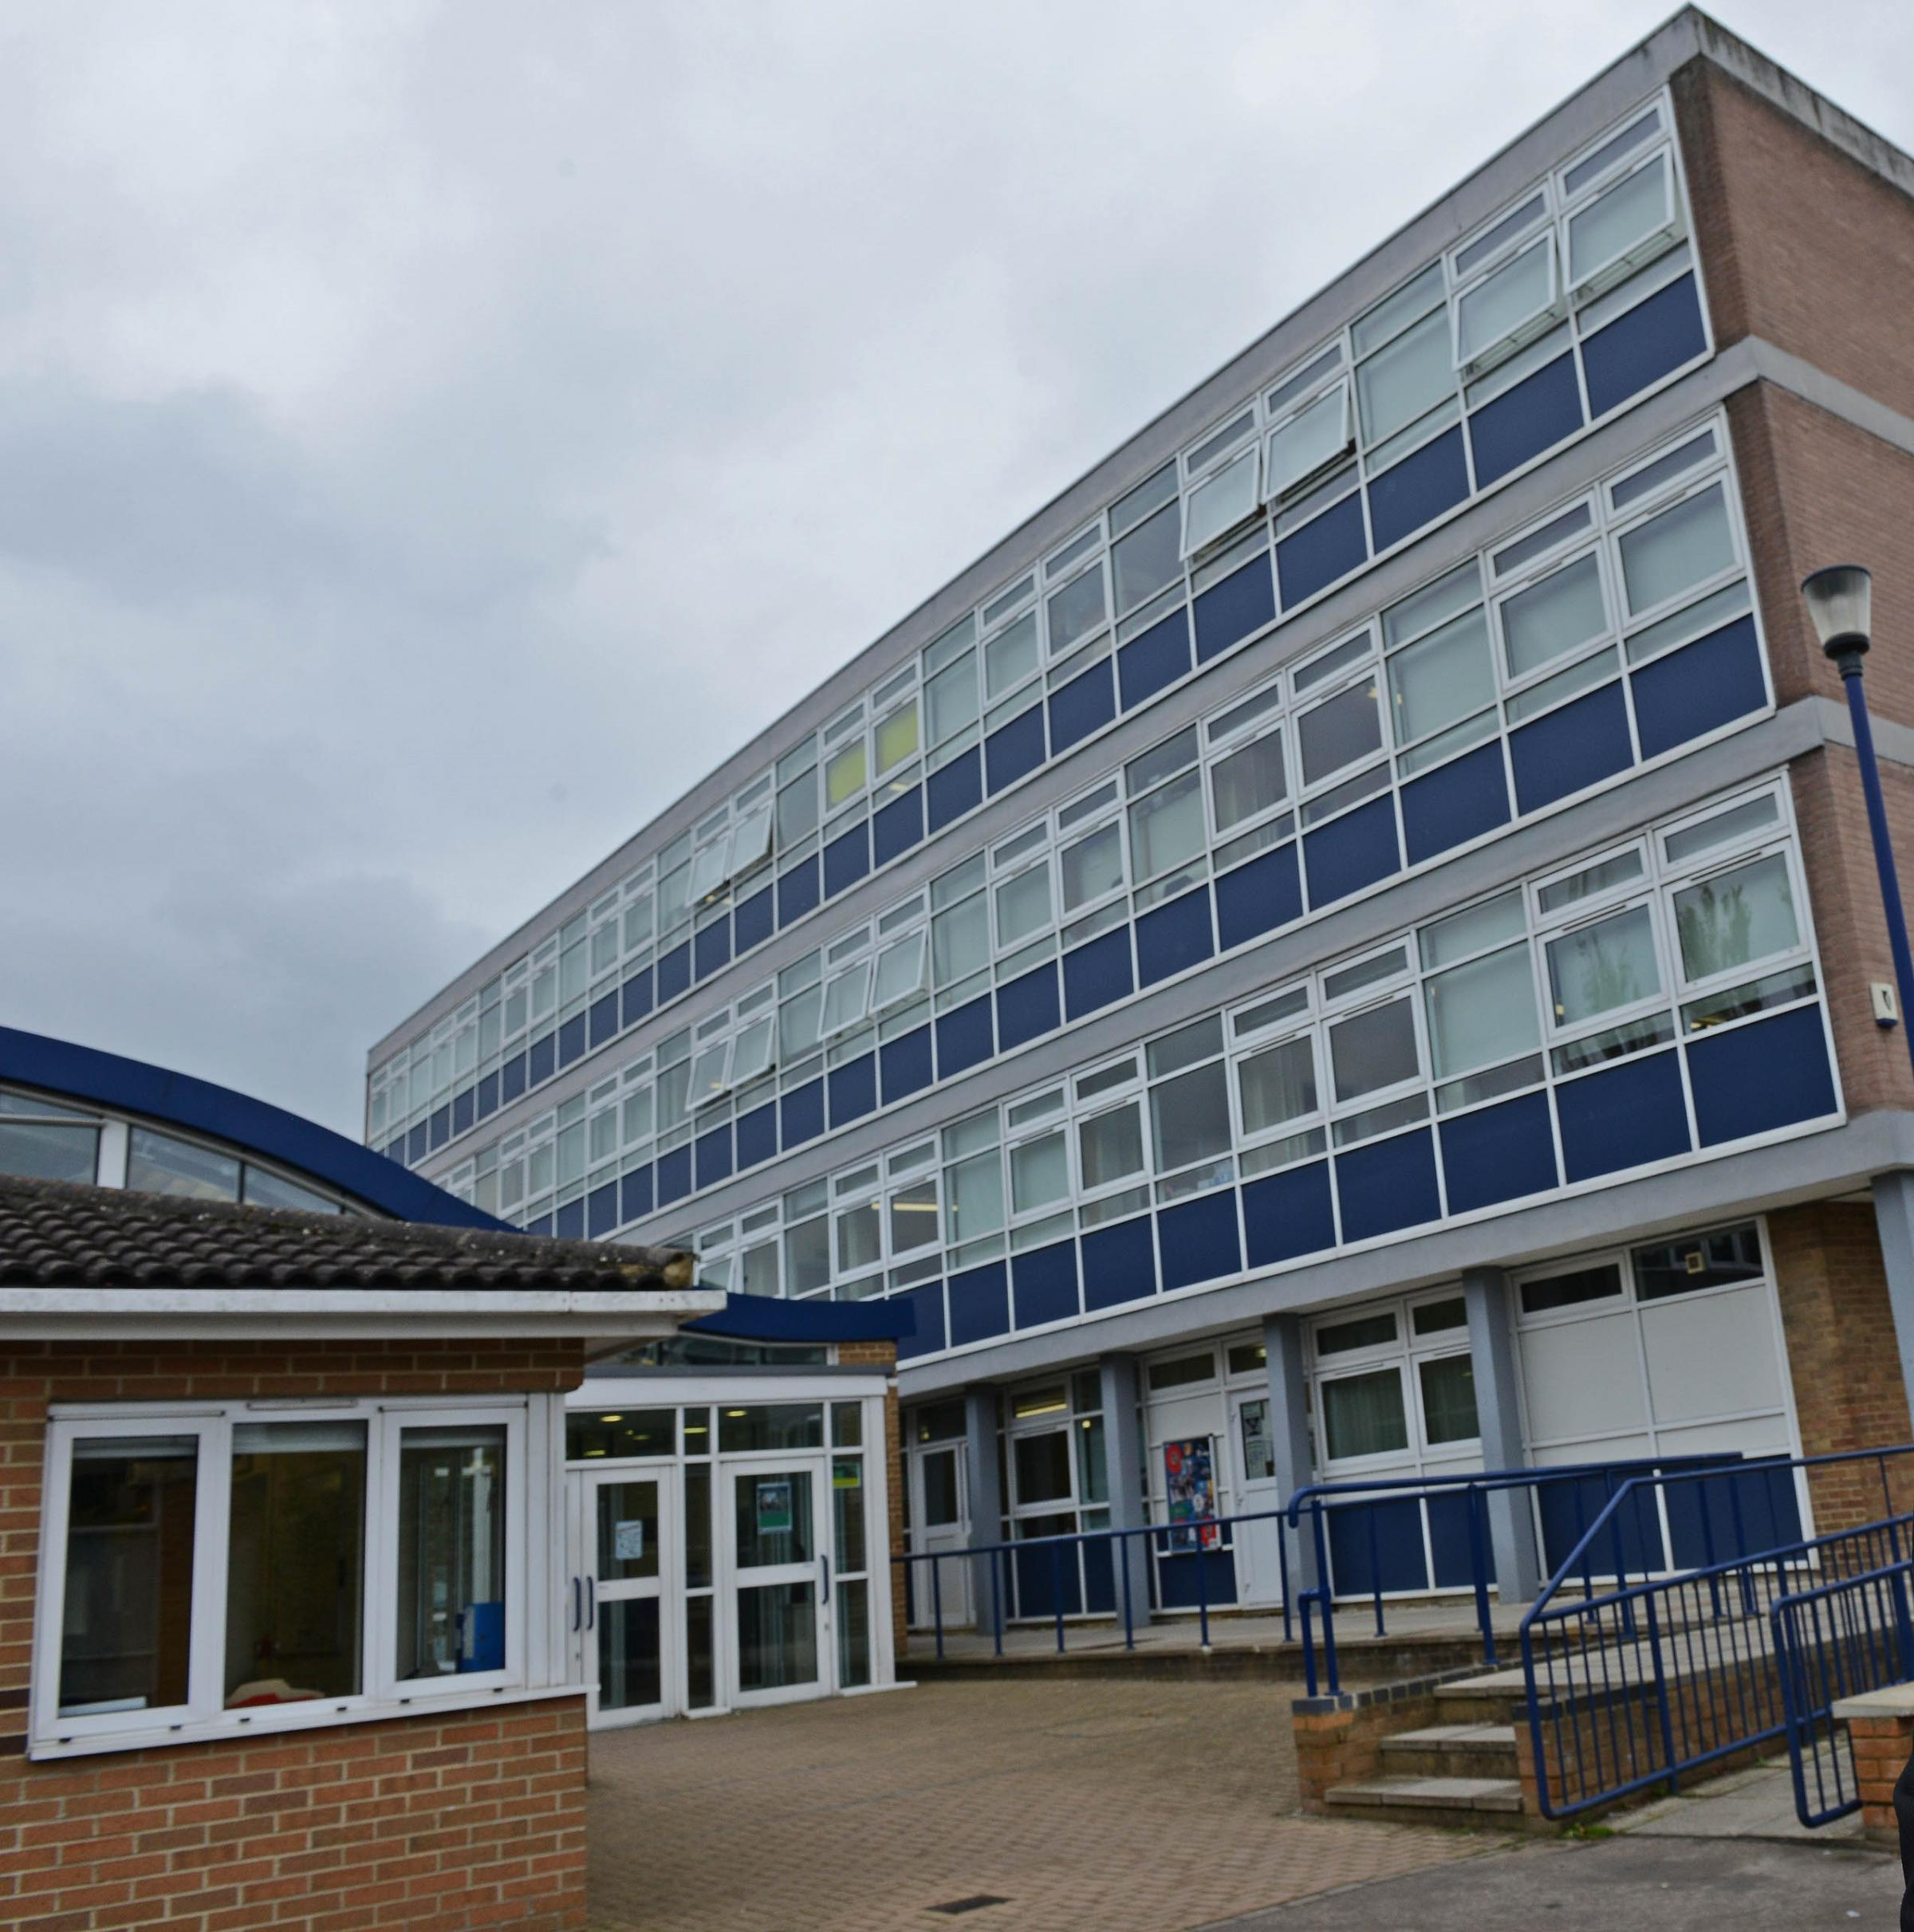 Exciting news – Our new building – Cumbernauld Academy